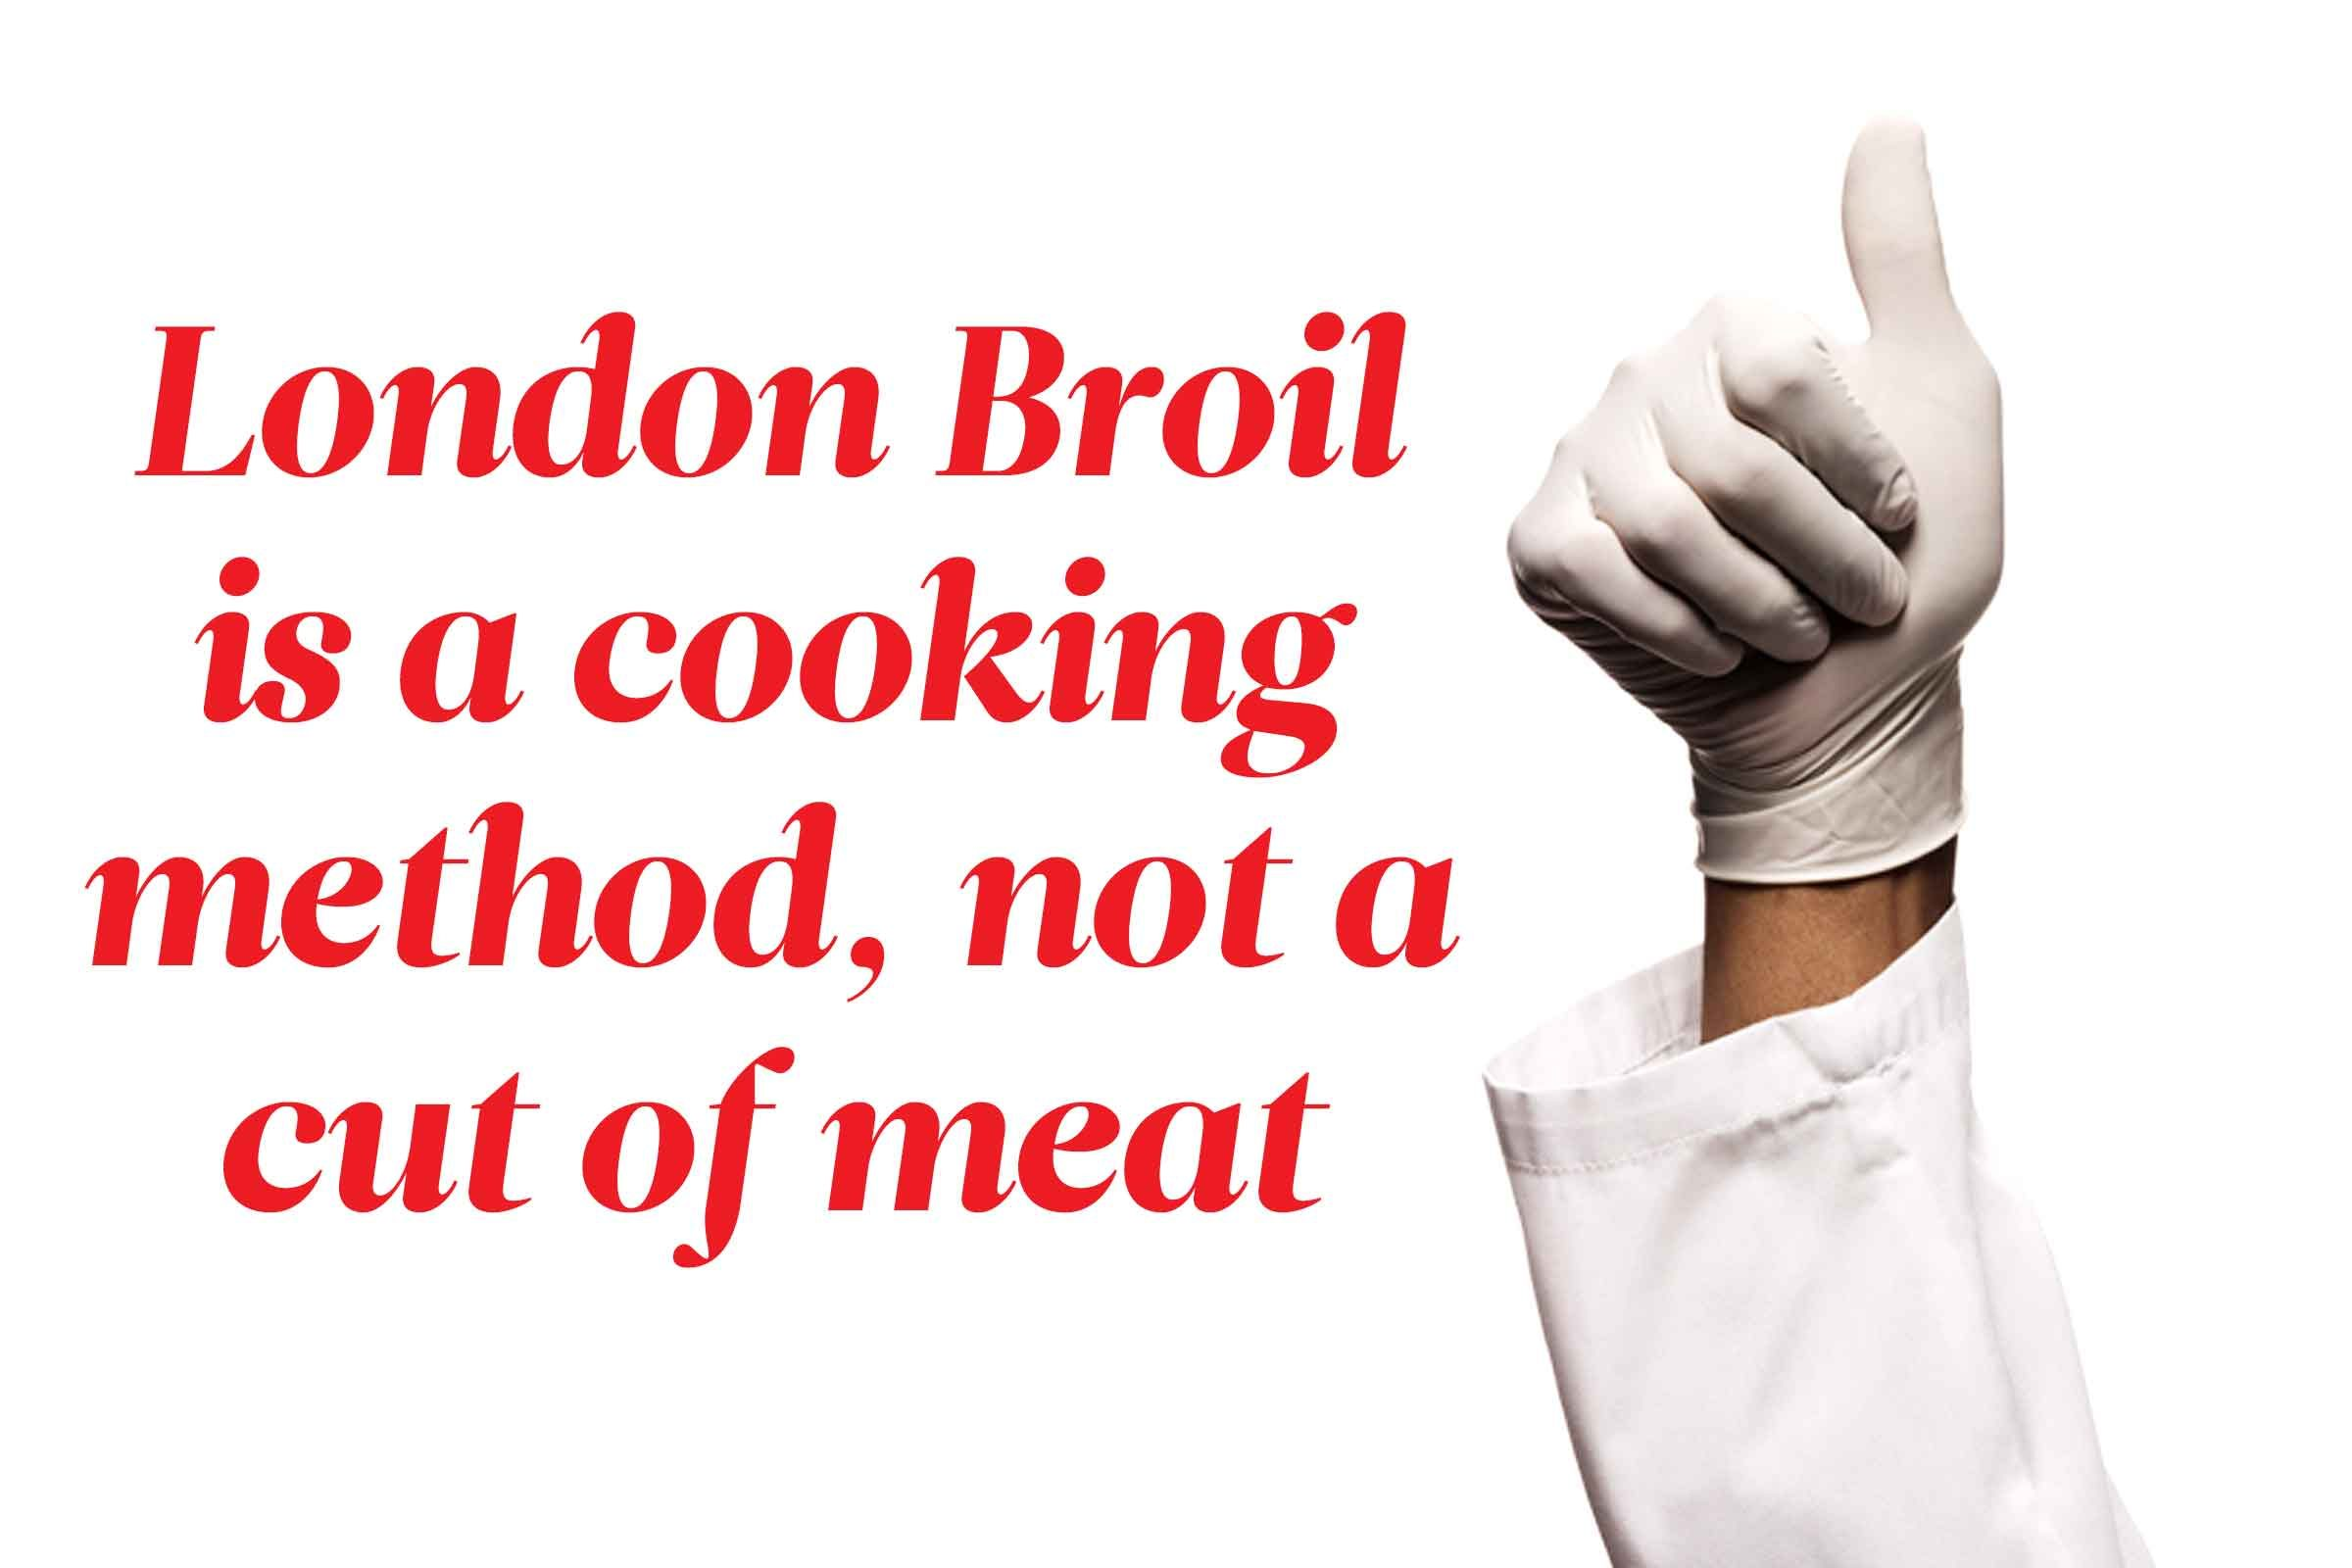 You've been wrong about London Broil this whole time